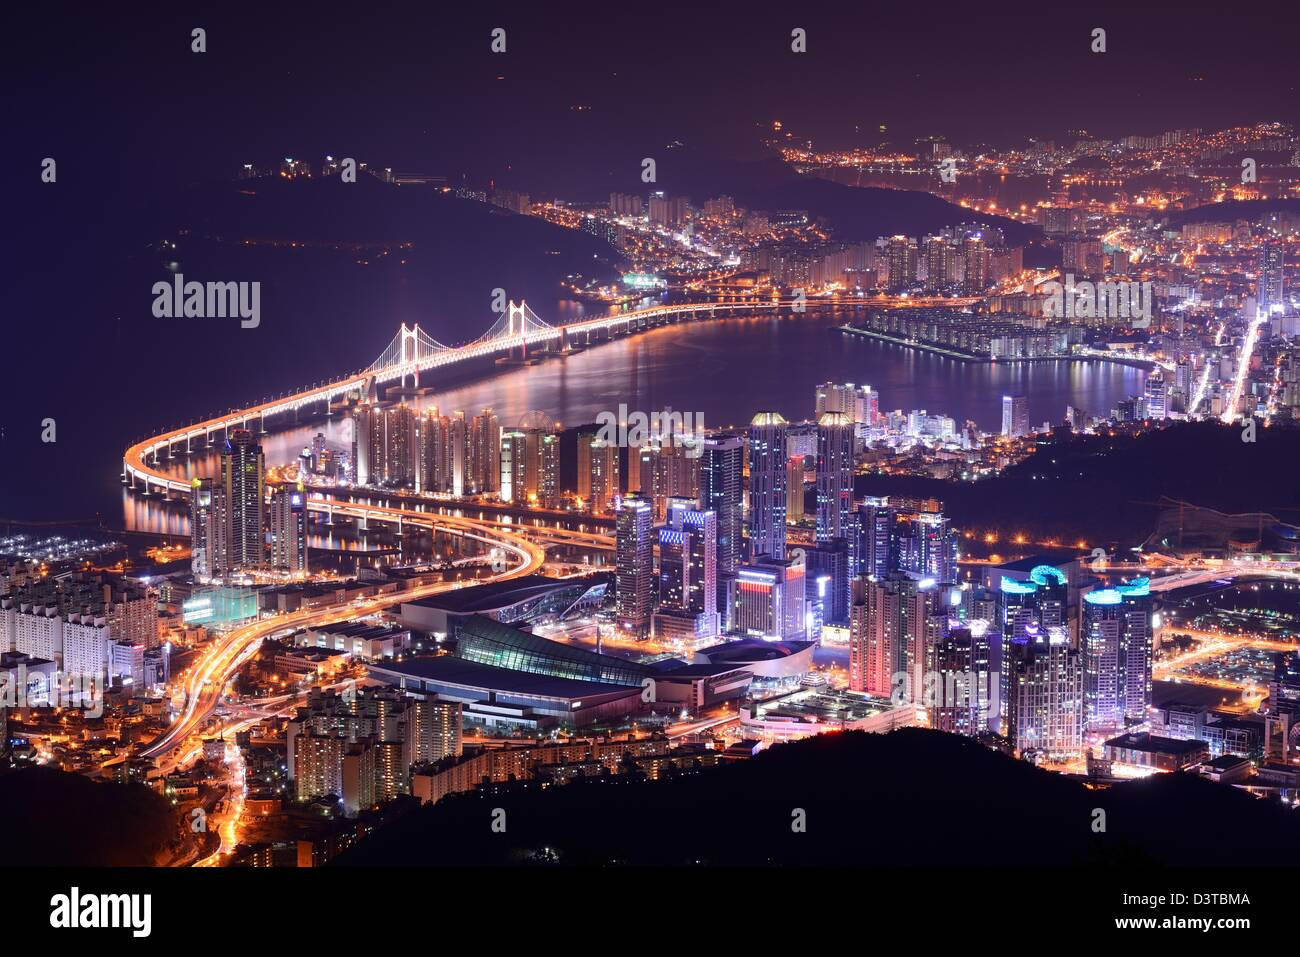 Skyline of Busan, South Korea at night. - Stock Image